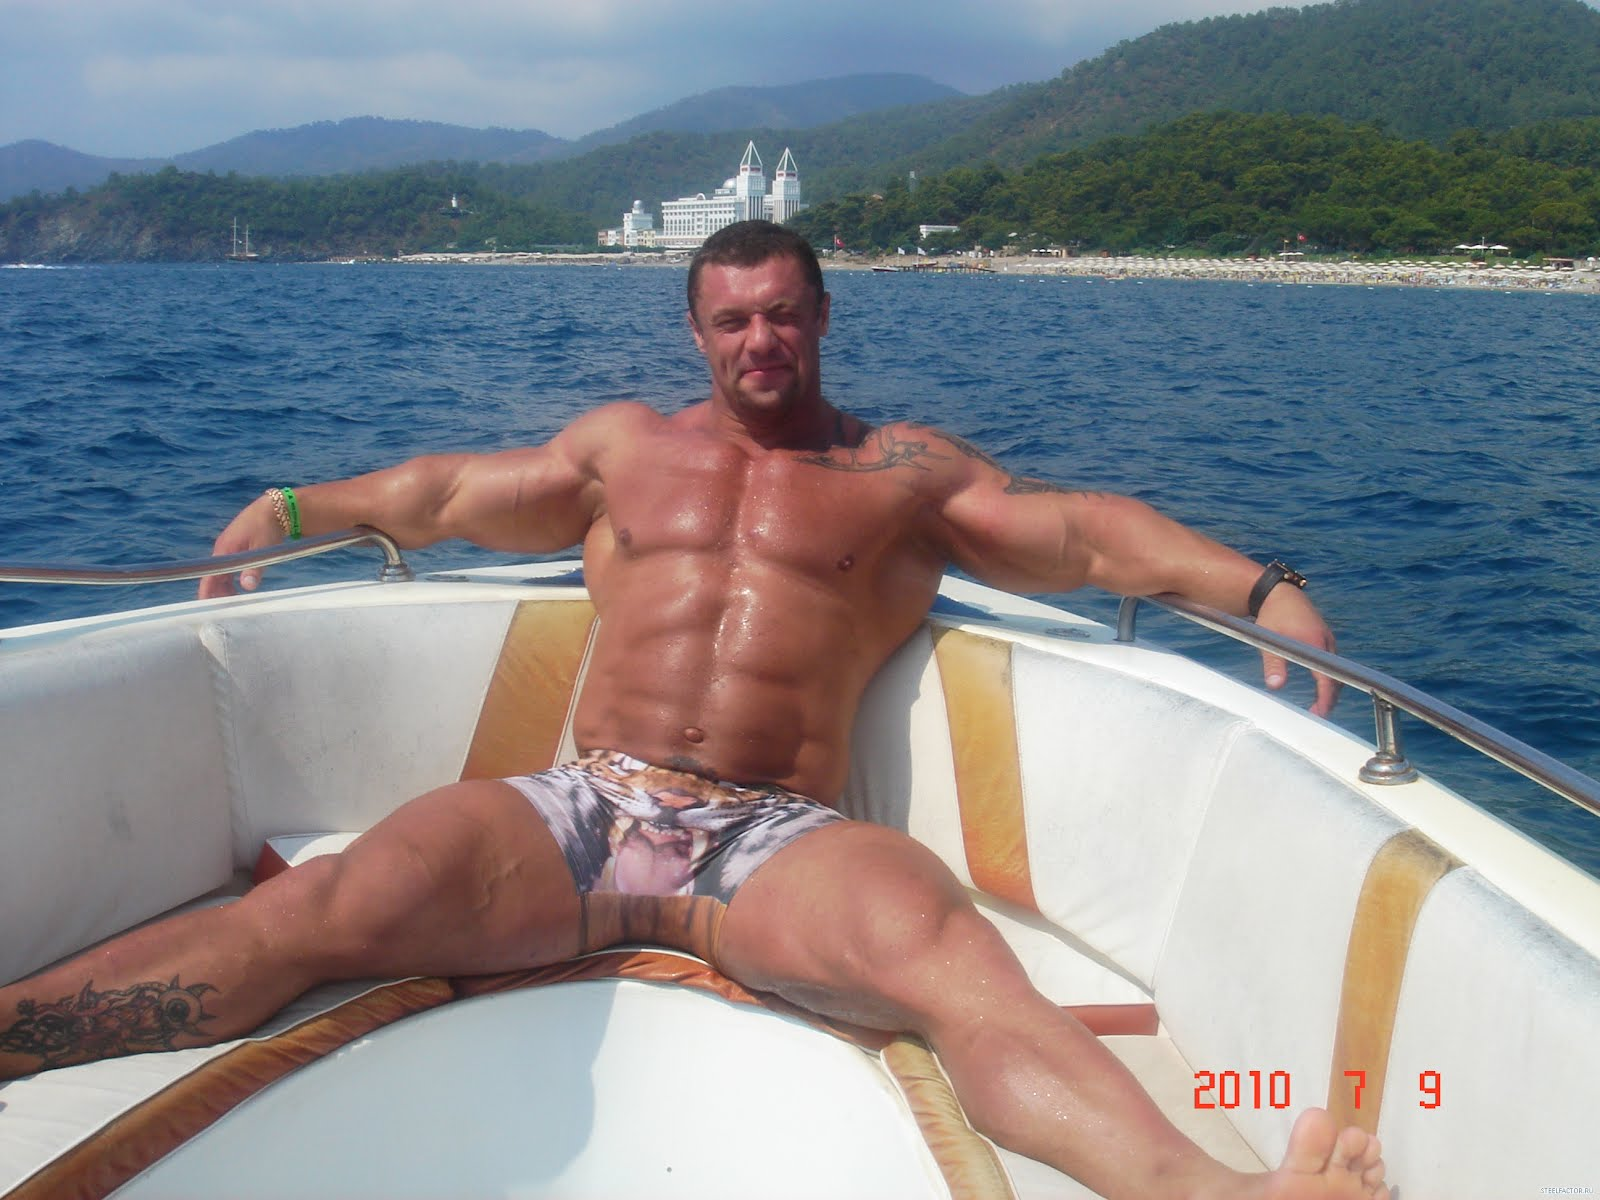 The clean Free Videos Of Gay Mature Men guys Just curious anyone